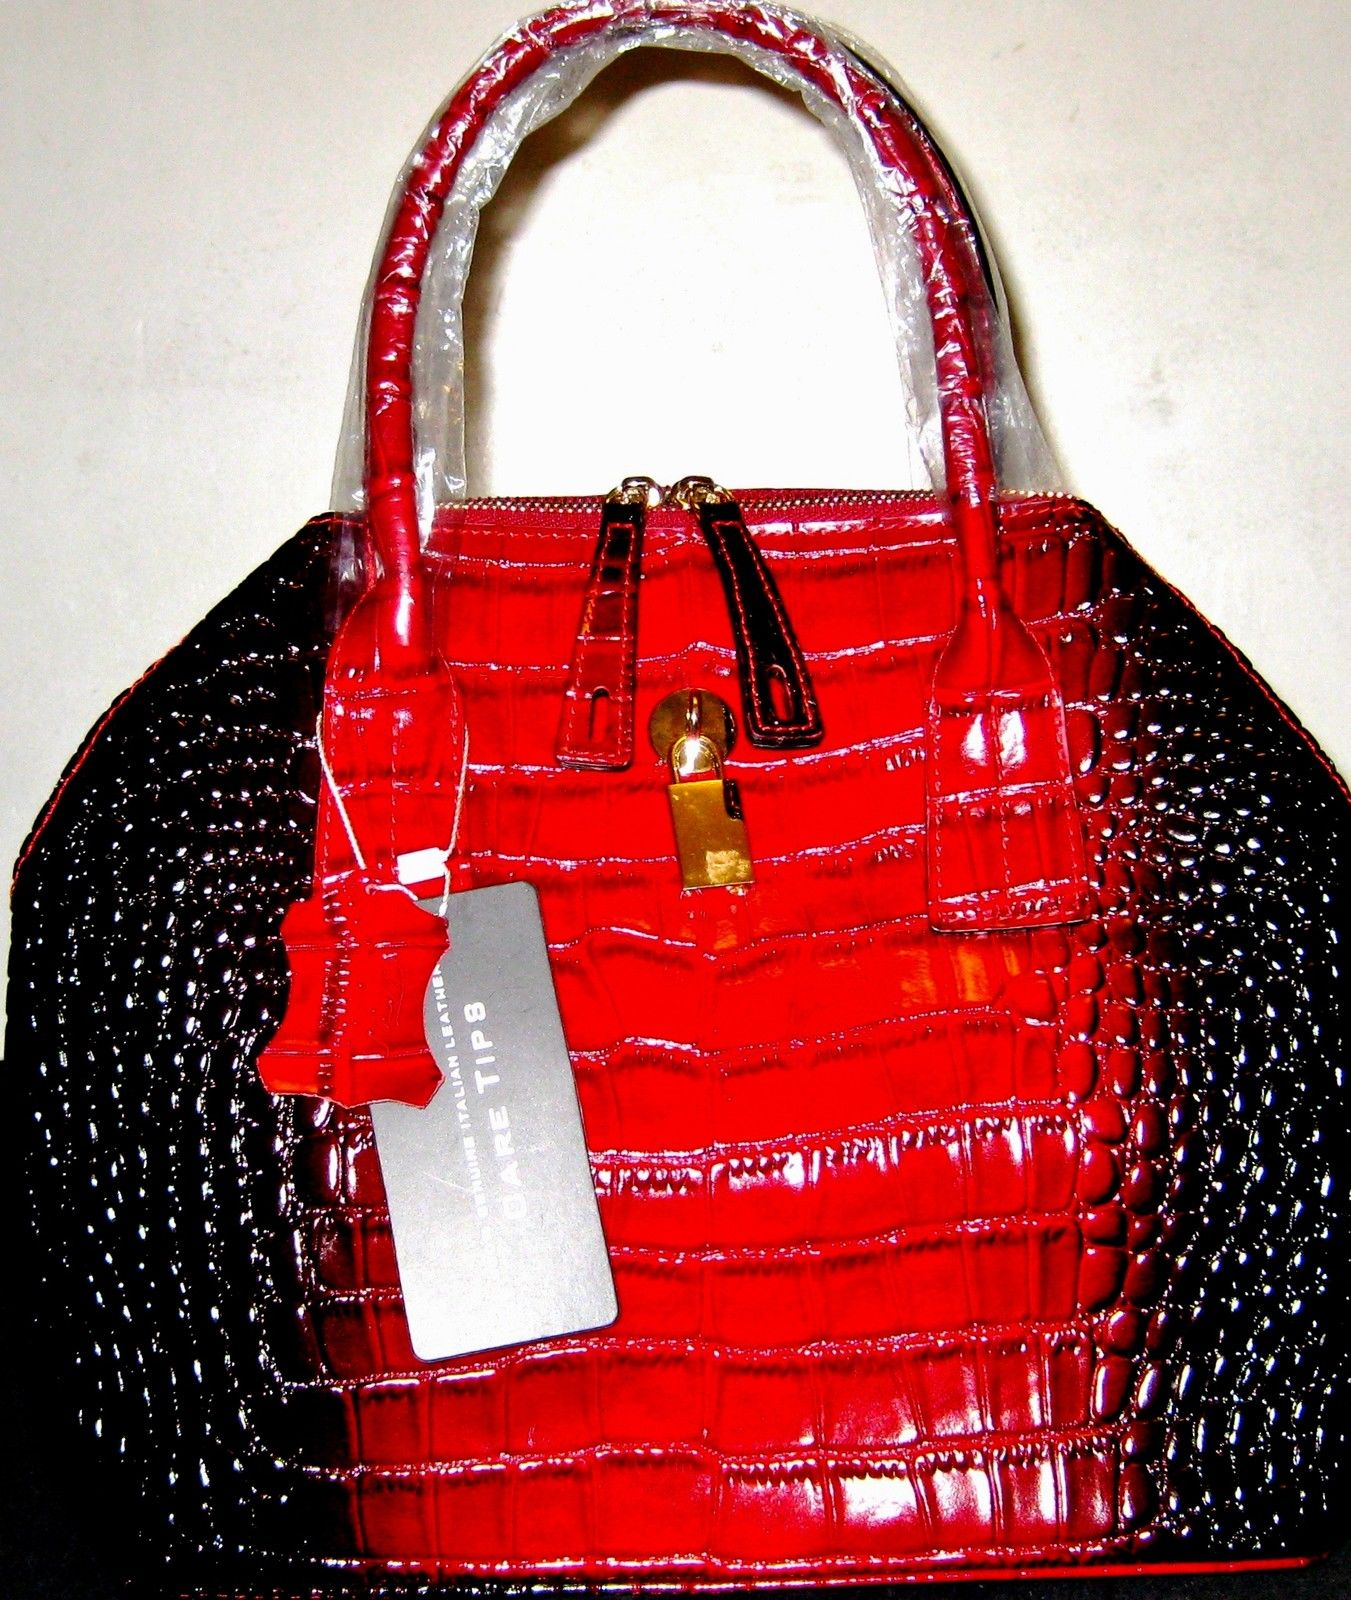 ITALY RED COWHIDE LEATHER HANDMADE WOVEN BRAID HANDBAGS